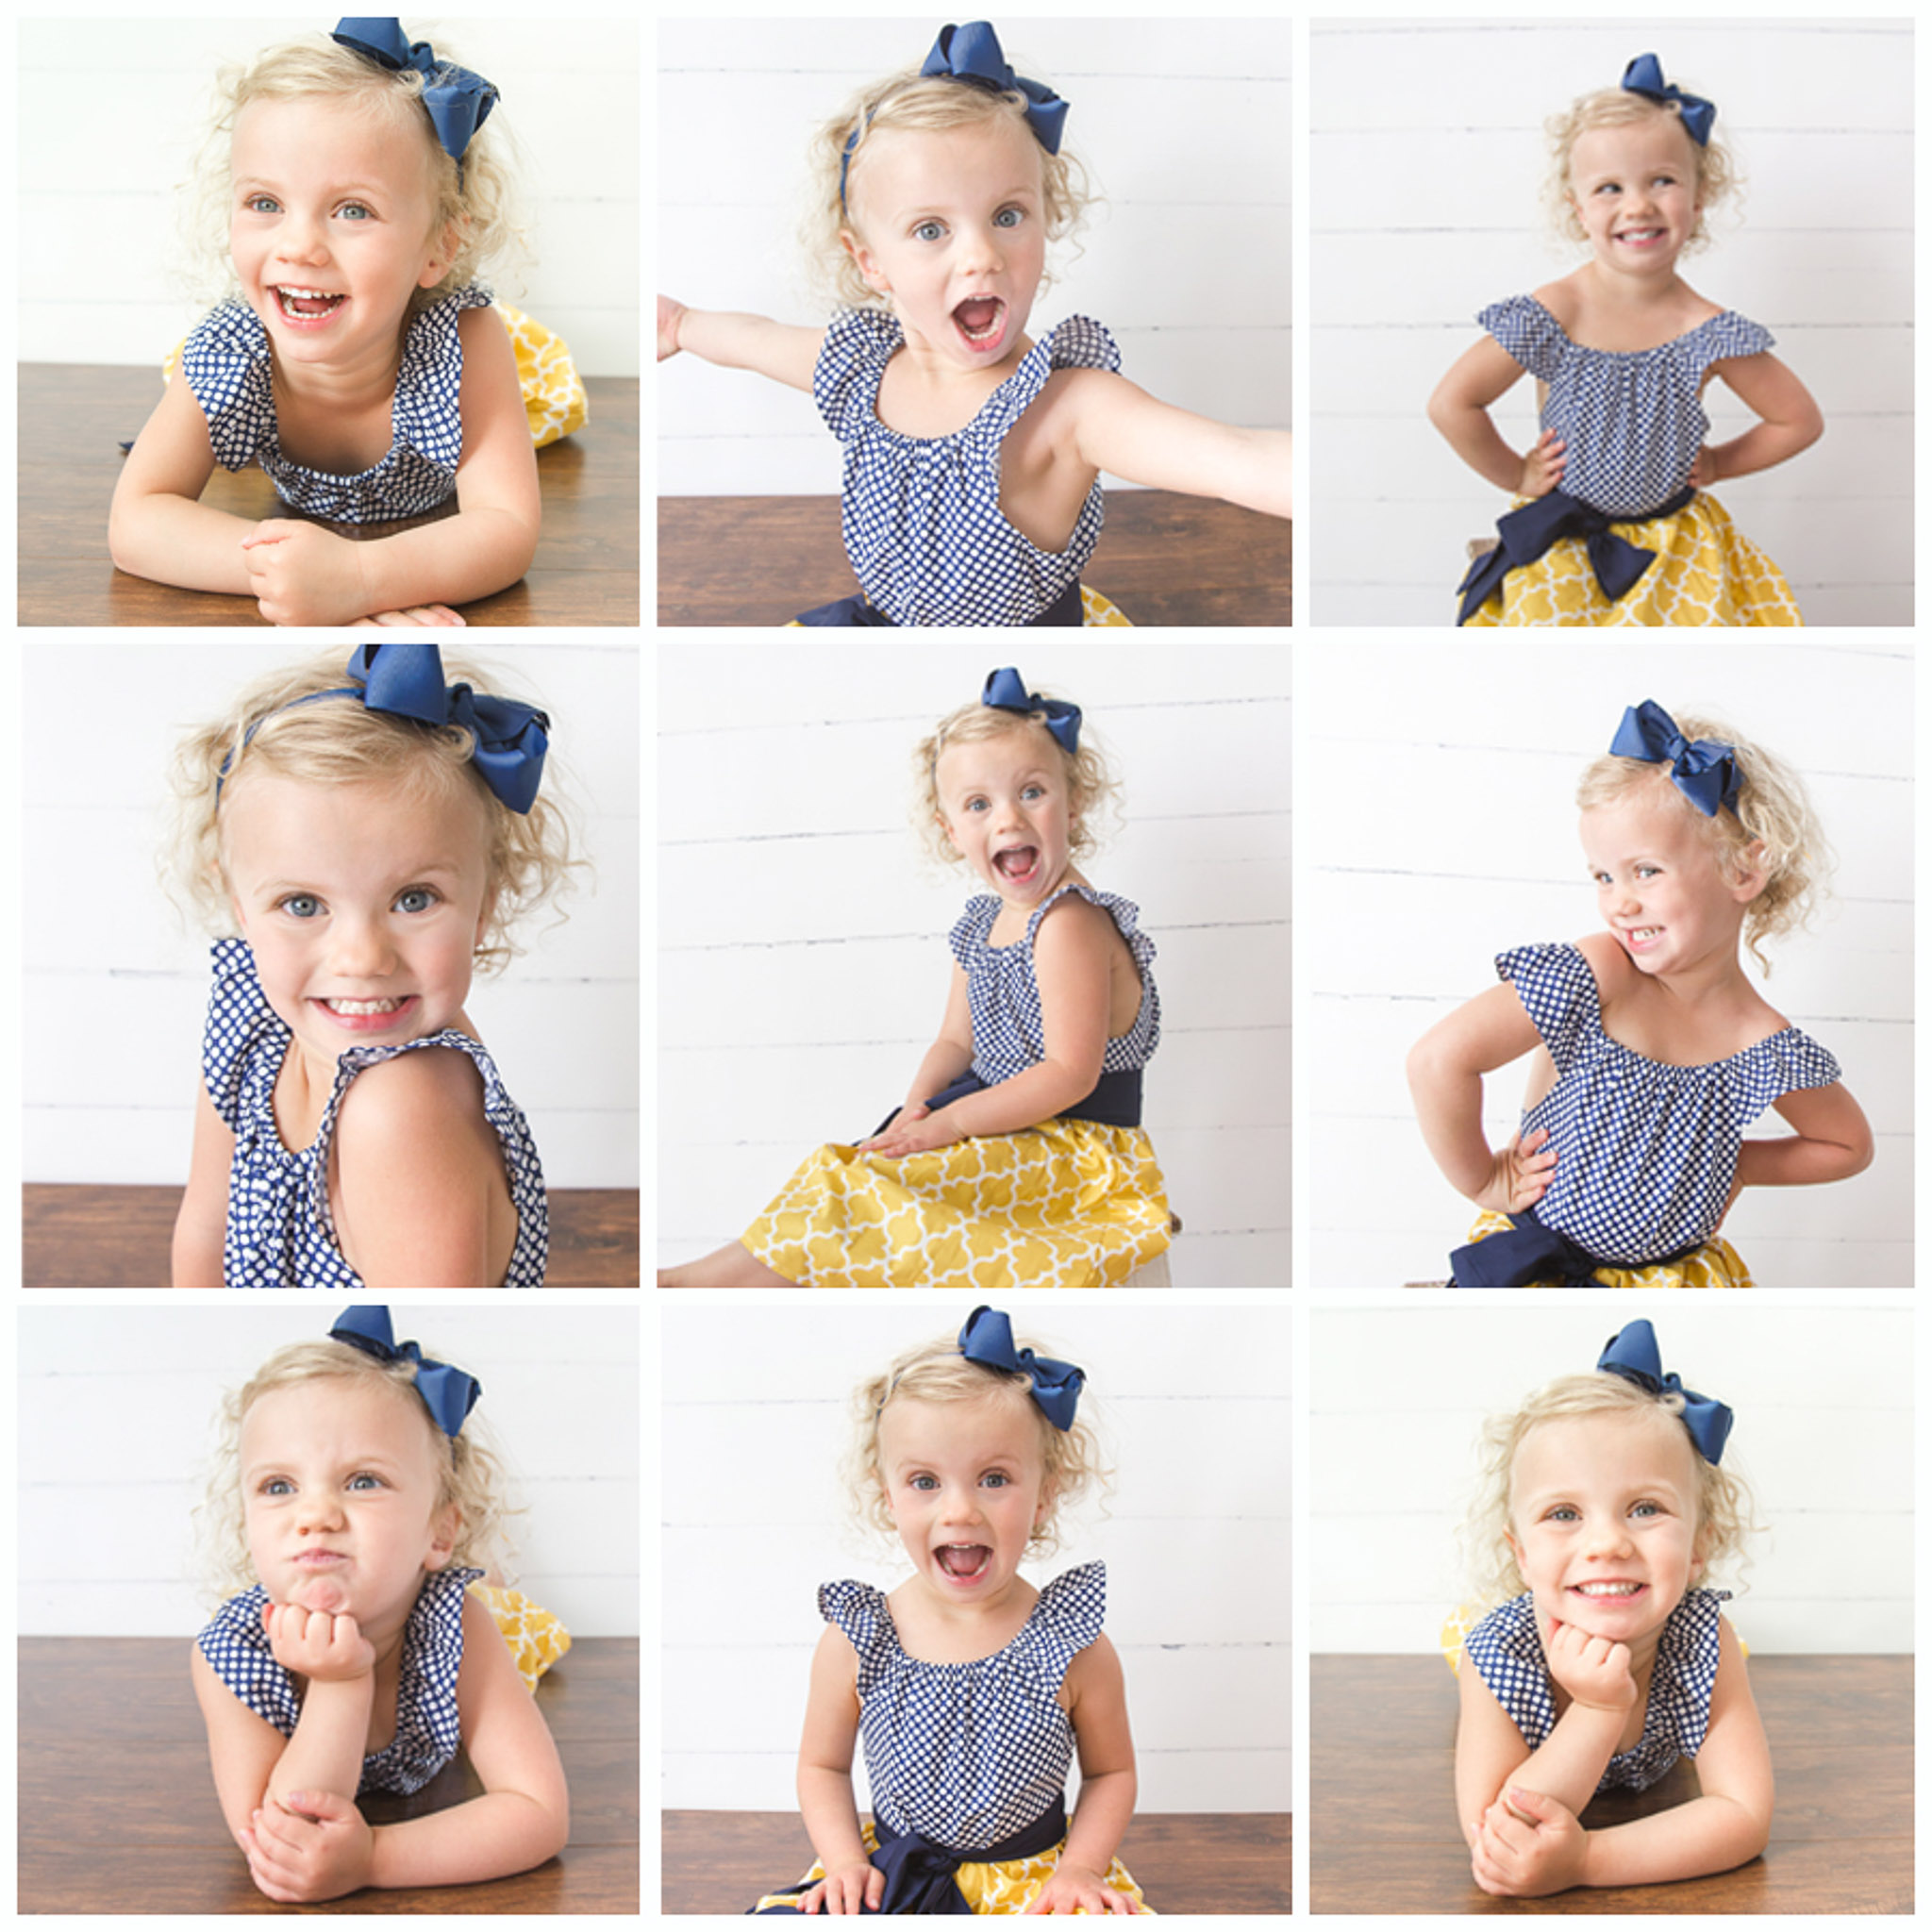 kids-photography-expressions-personality.jpg